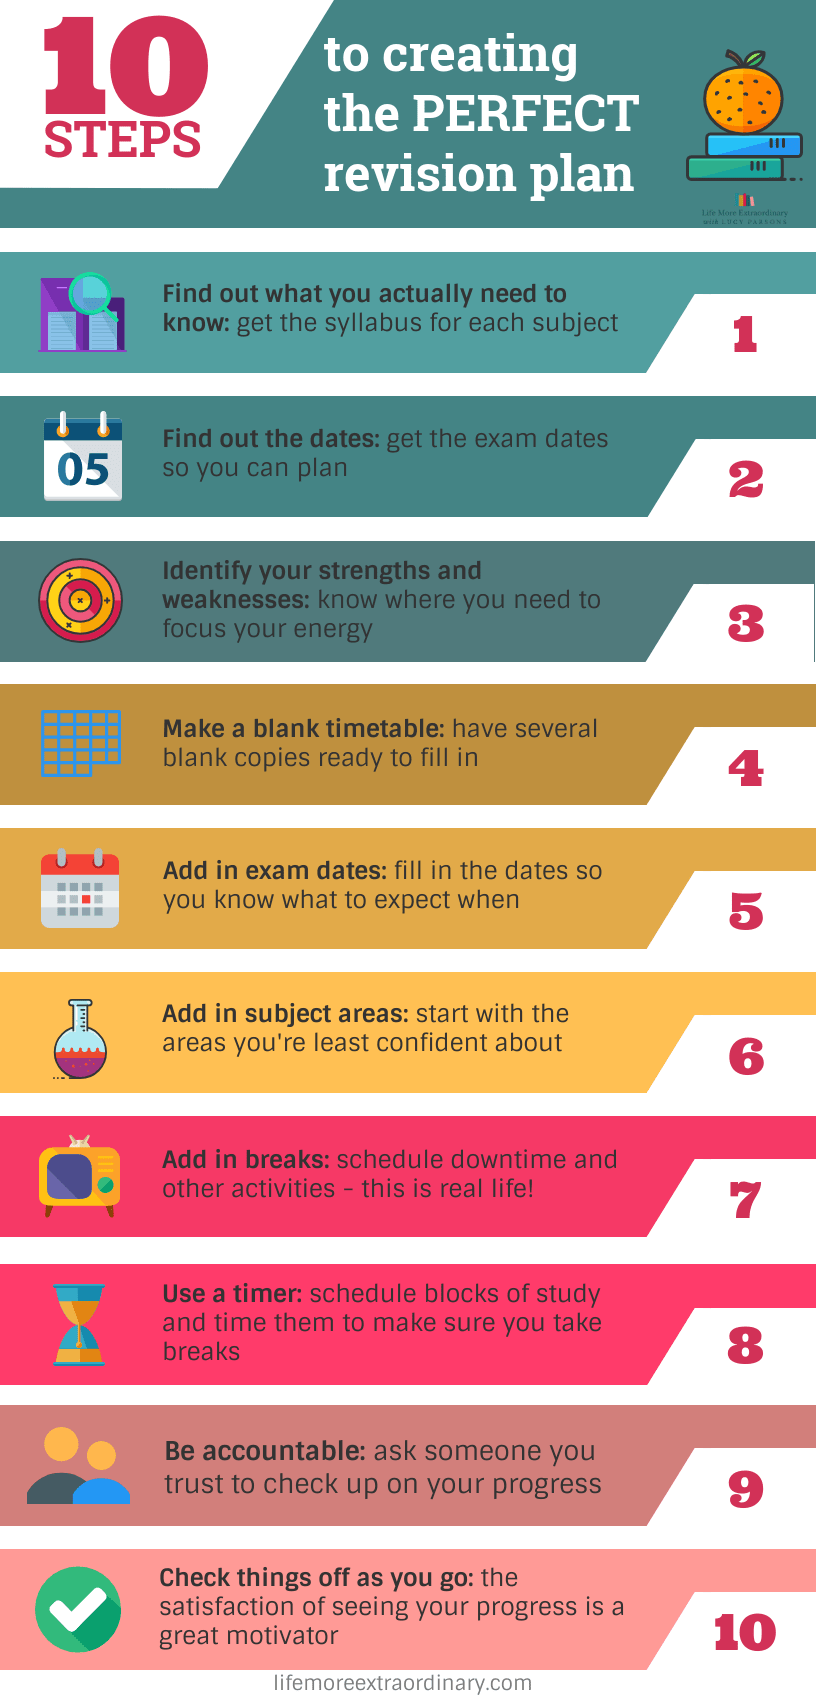 Follow these 10 steps to exam success! Build your perfect revision plan using these tips and make sure you're totally ready for those exams. #studytips #exams #examrevision #studytechniques #GCSEs #ALevels